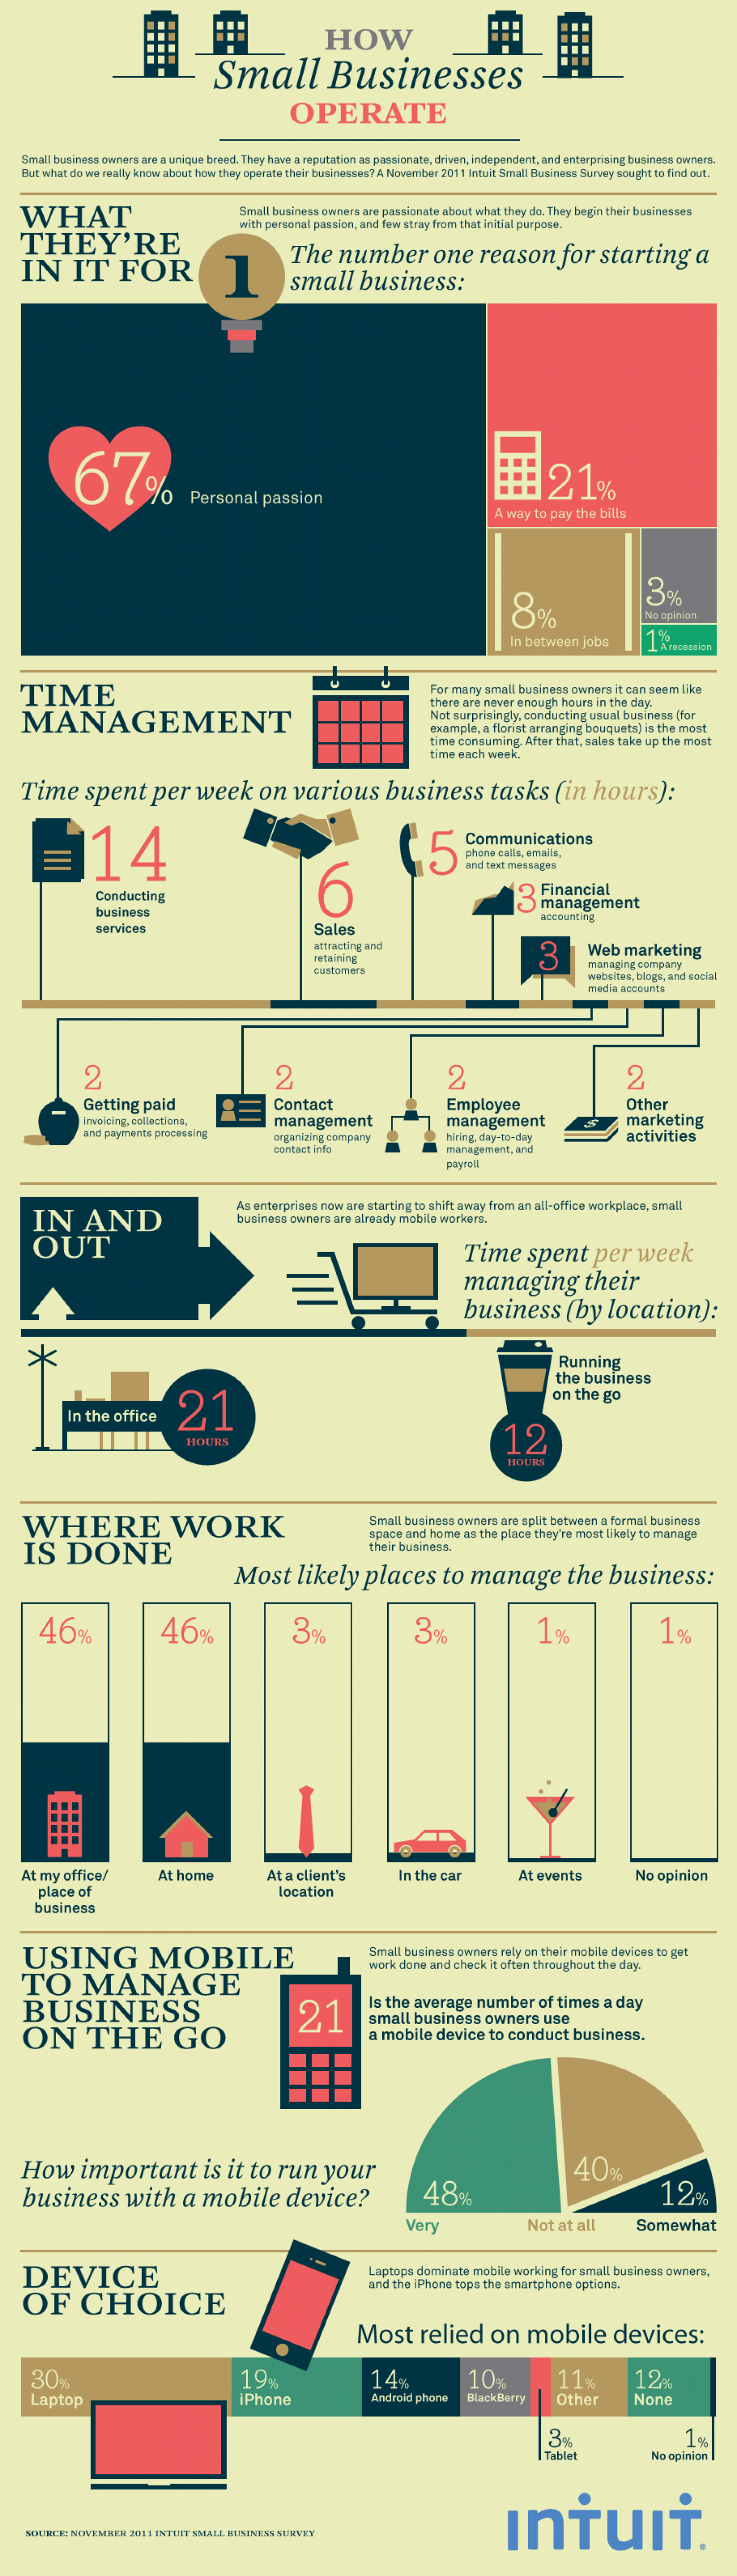 How Small Businesses Operate Infographic